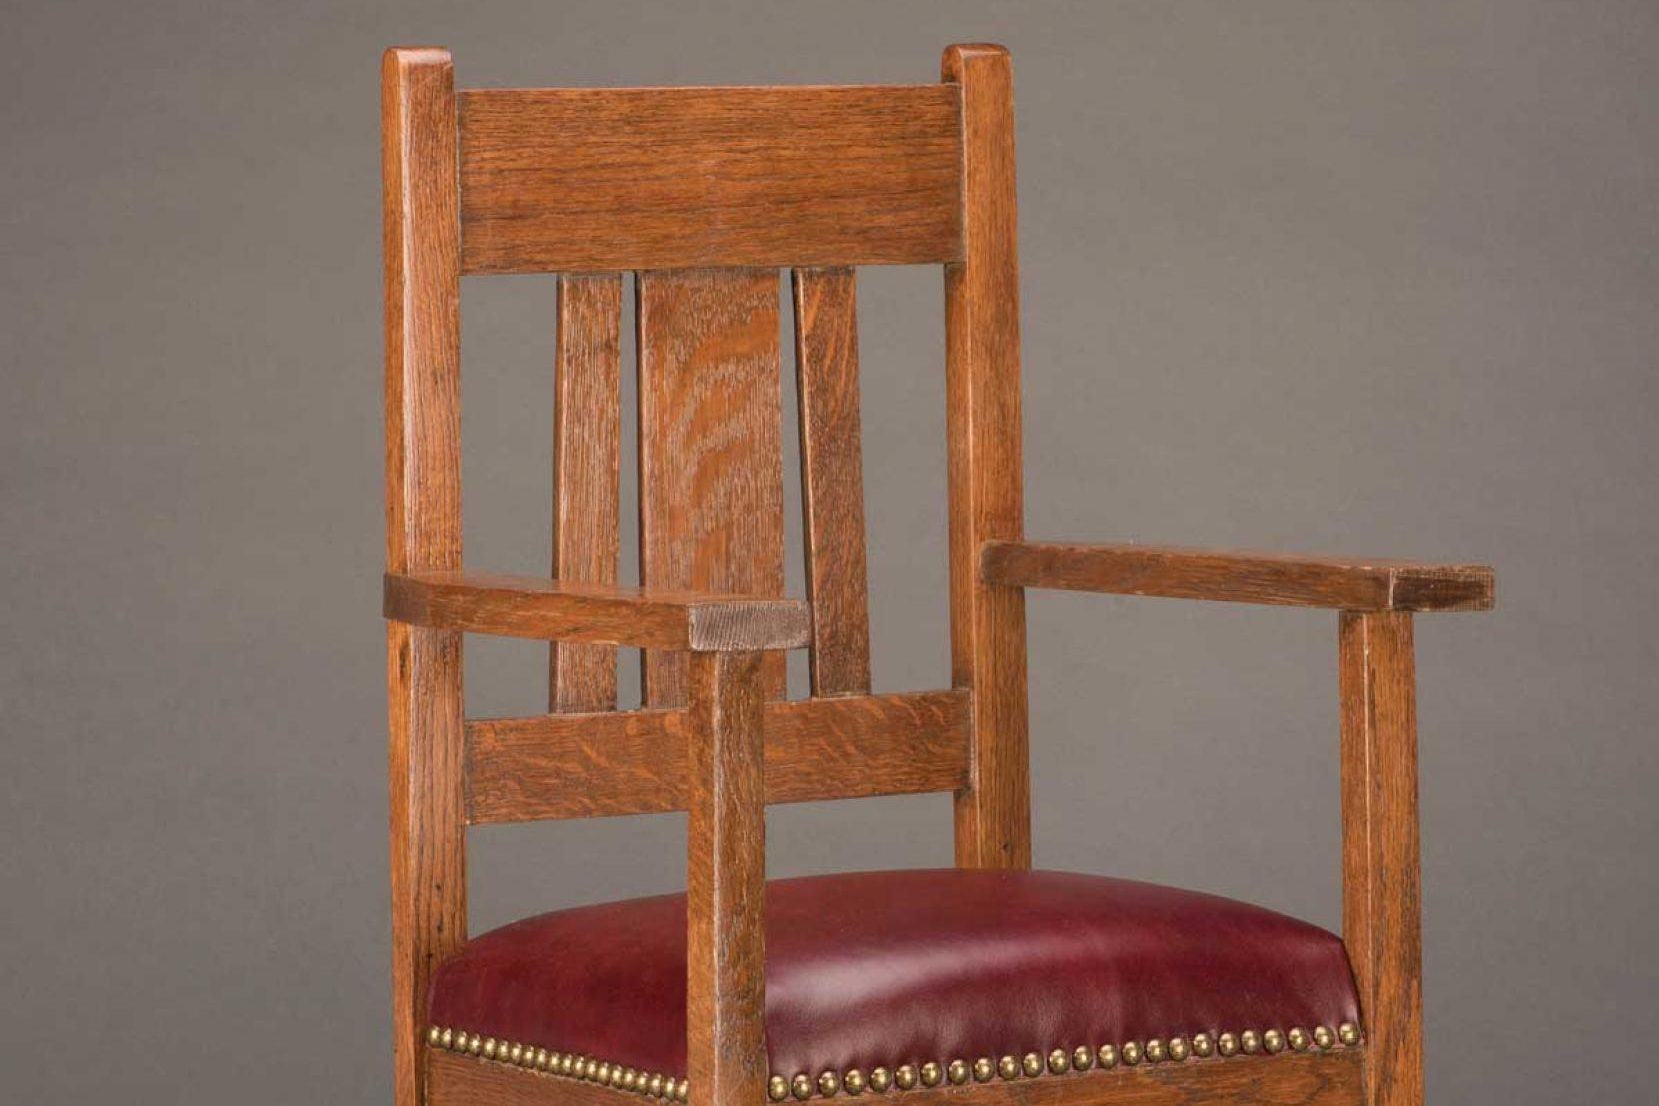 Exhibition Charts The Rise And Relevance Of The Arts And Crafts Design  Movement   UT News   UT News